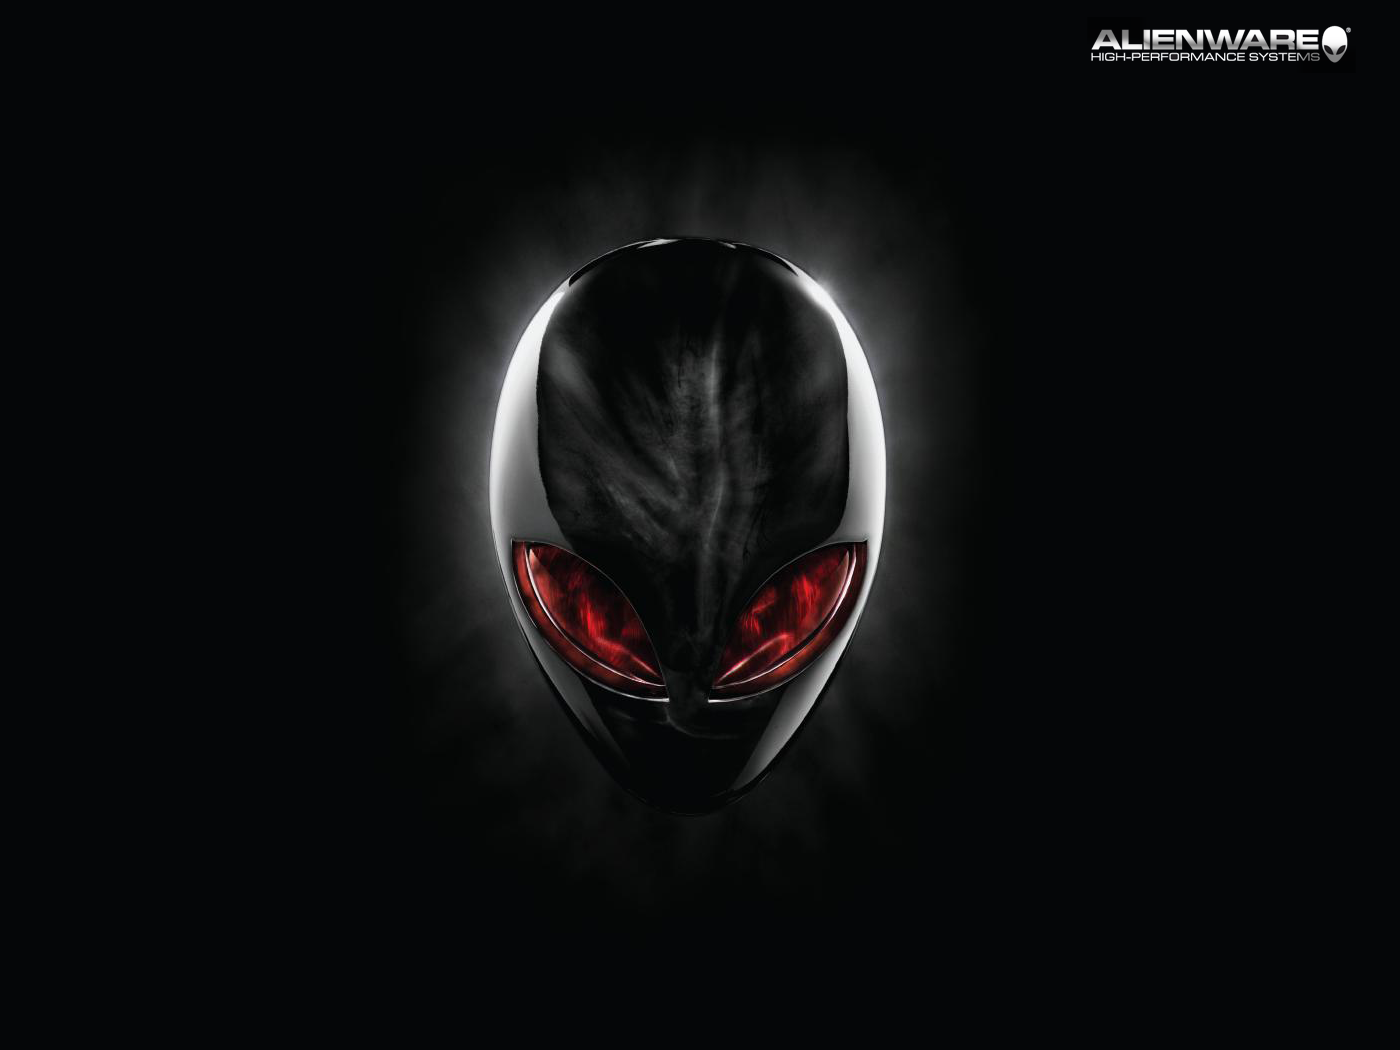 Red eye Alienware background by CornerShot8